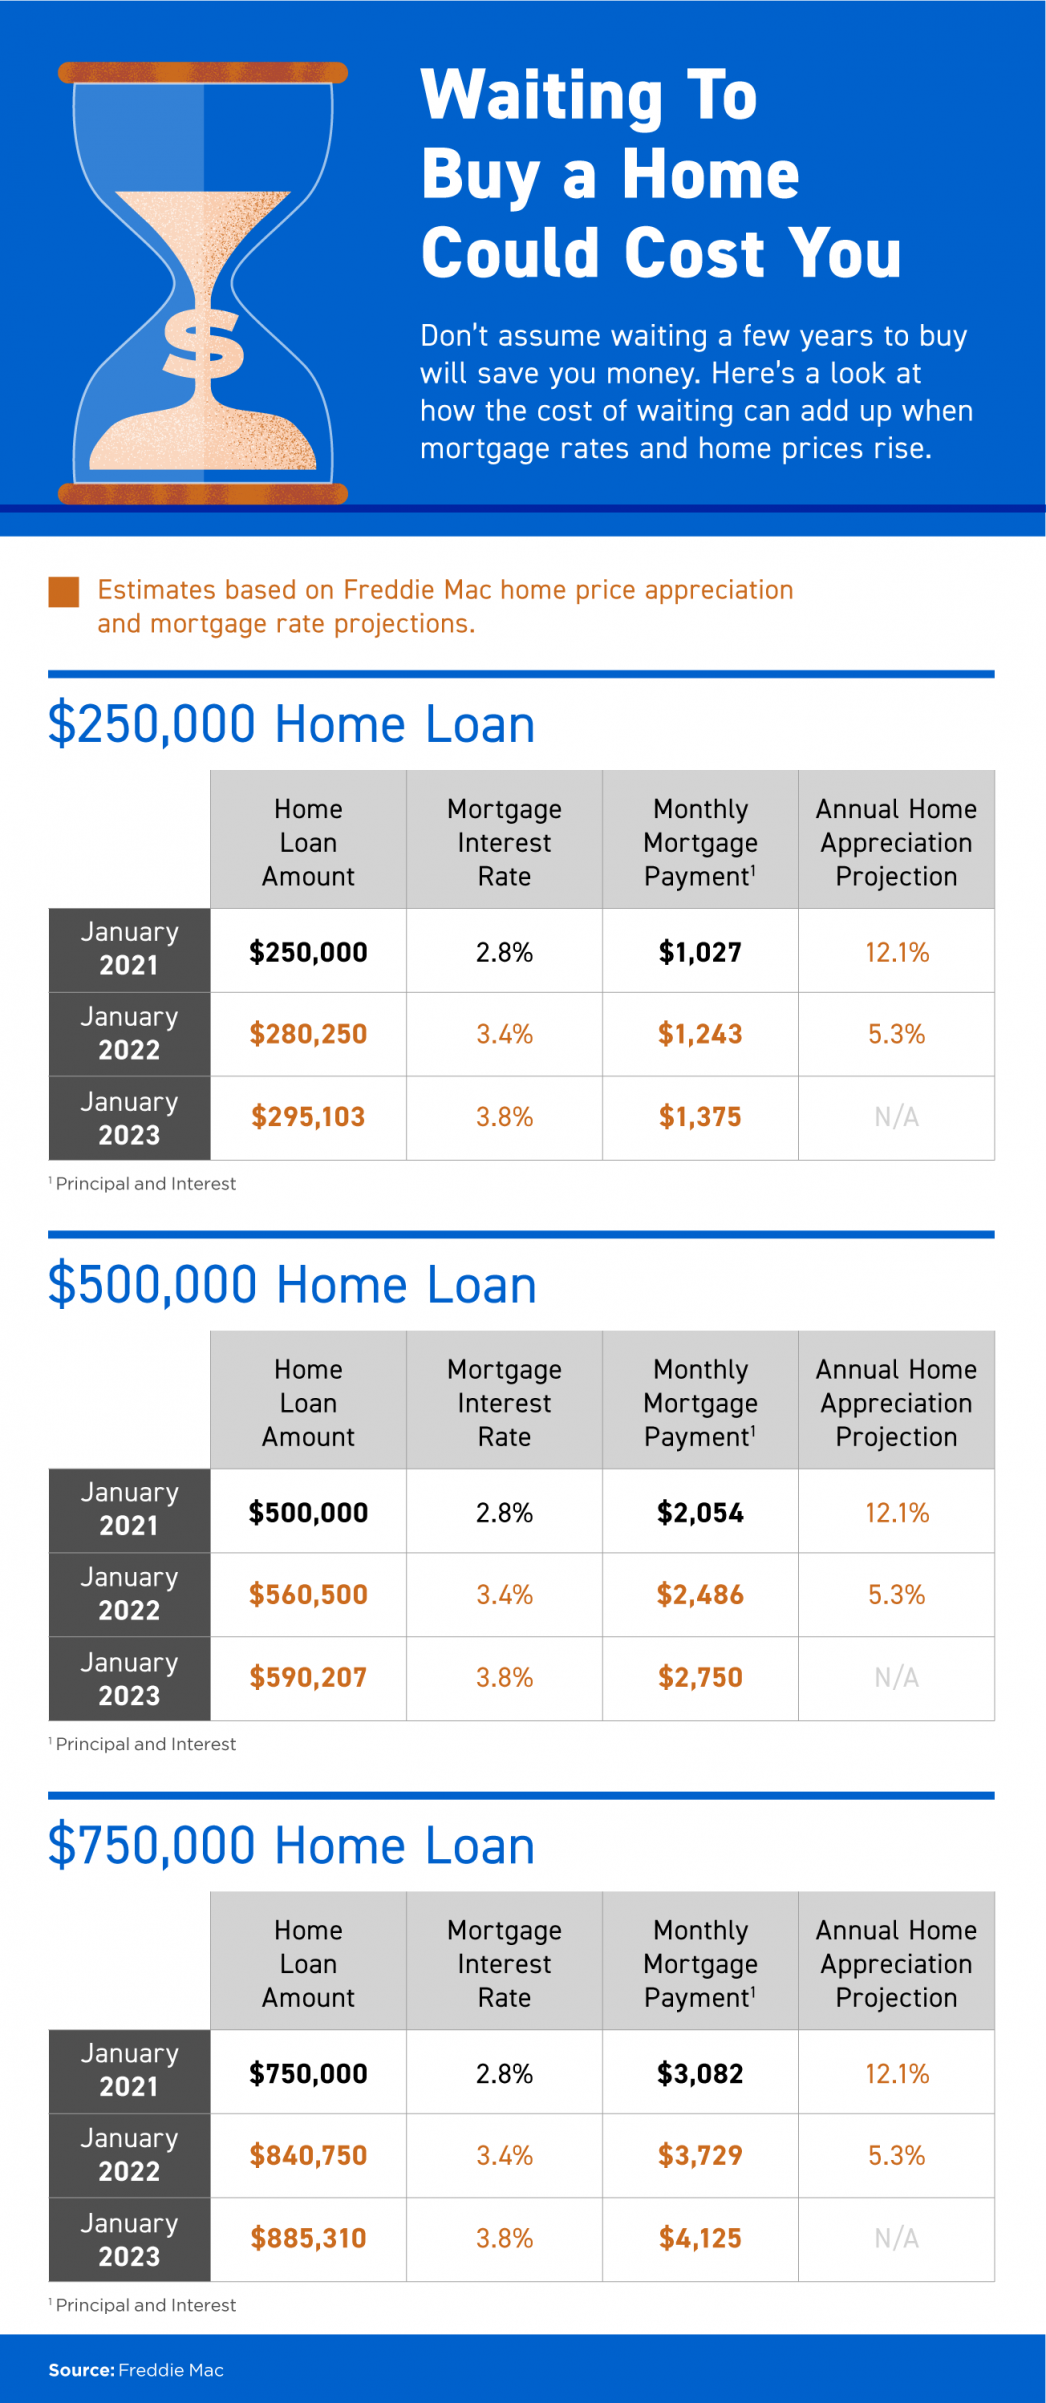 Waiting To Buy a Home Could Cost You [INFOGRAPHIC] | MyKCM